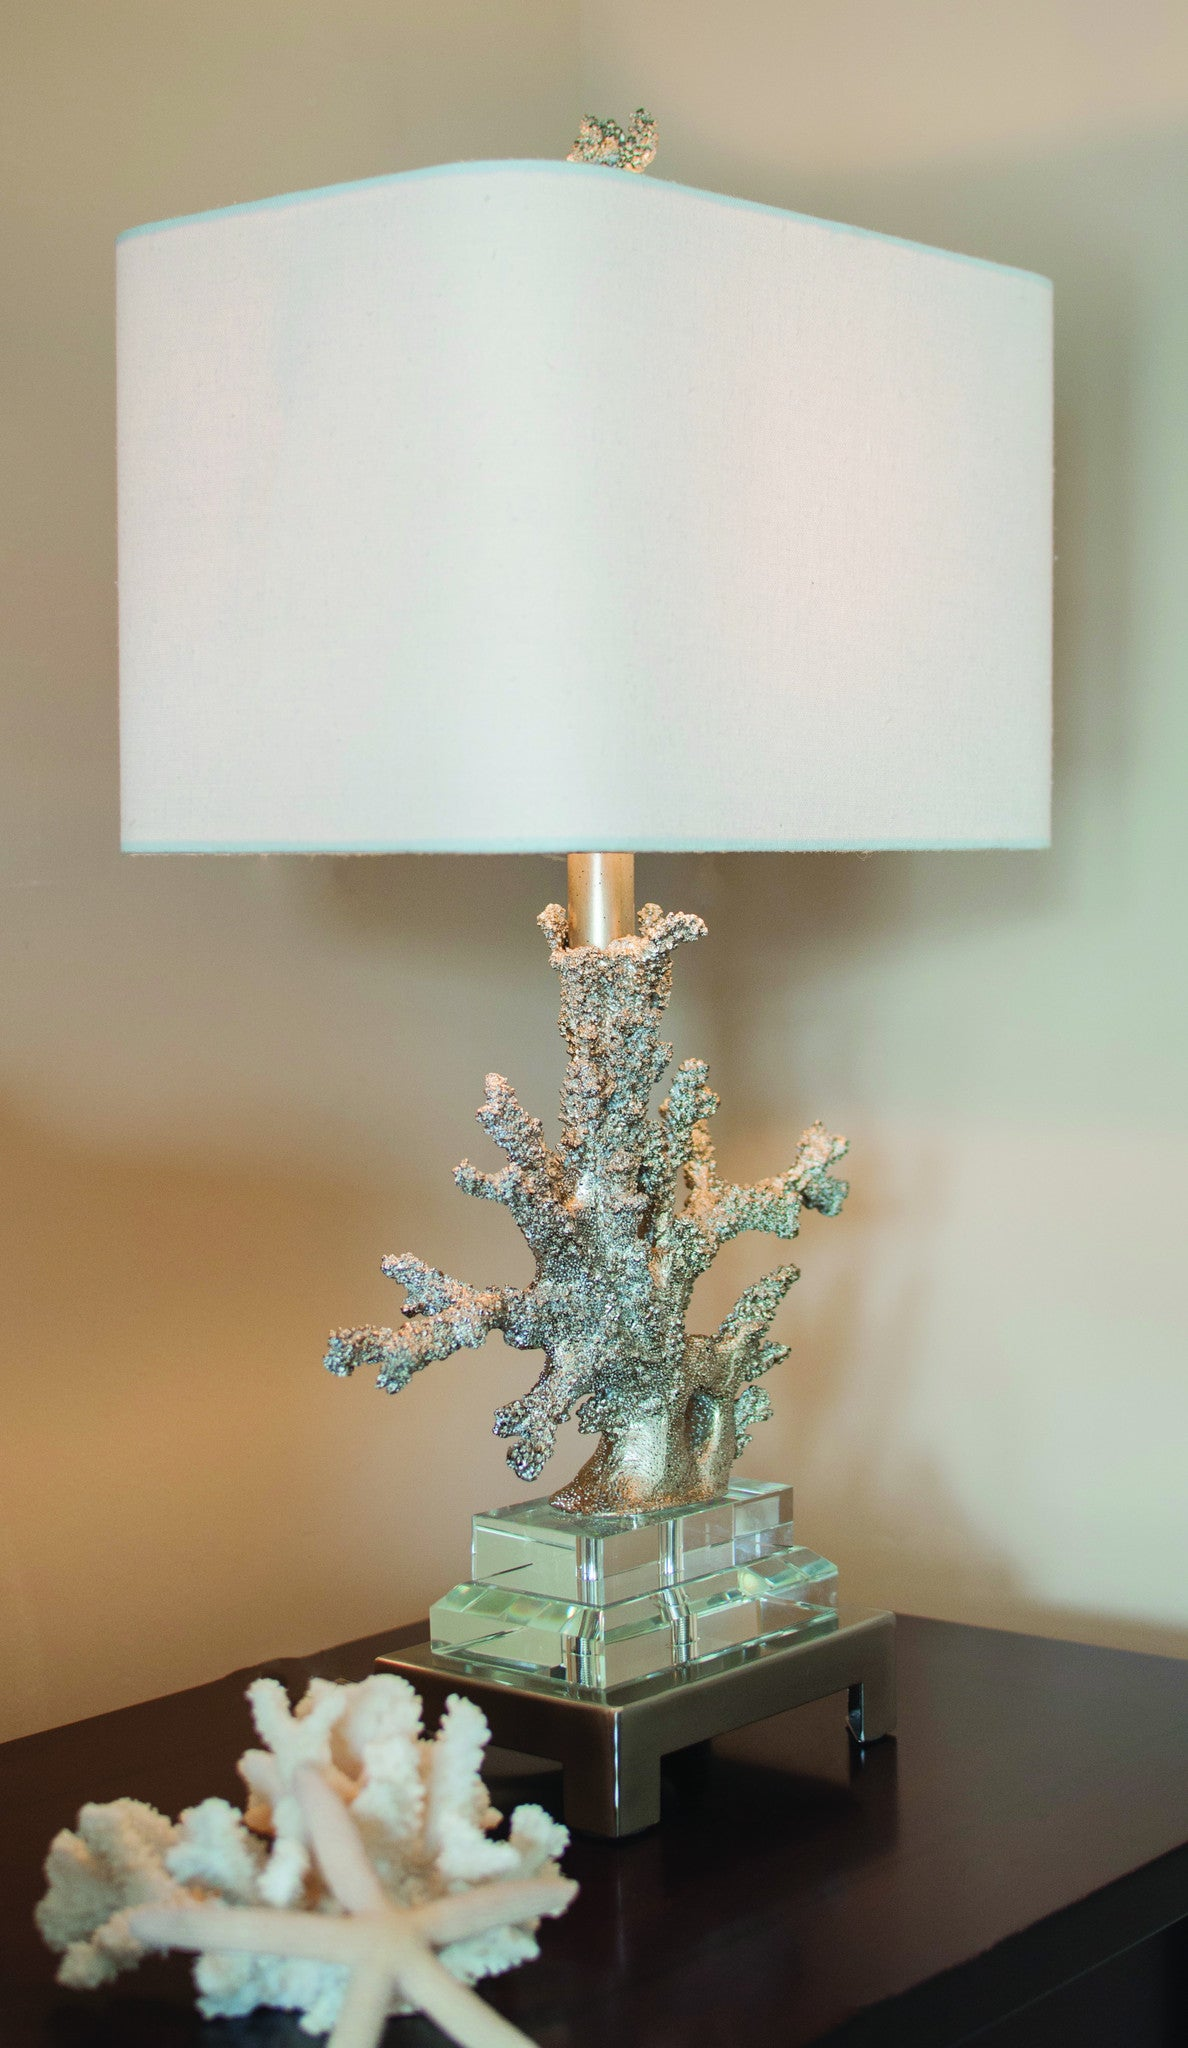 Silver coral table lamp design by couture lamps burke decor silver coral table lamp design by couture lamps mozeypictures Images